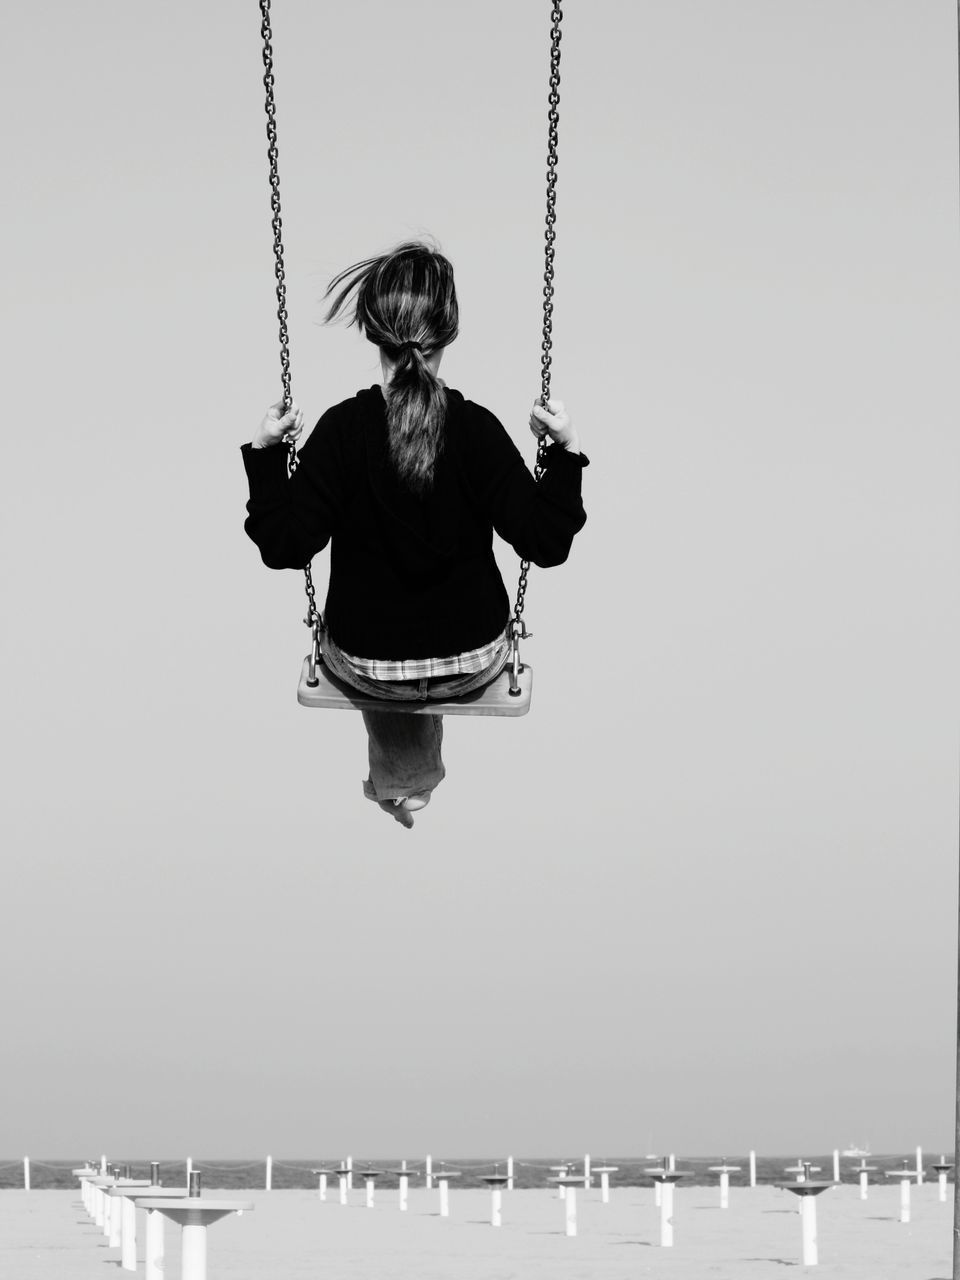 WOMAN WITH ROPE AGAINST SKY